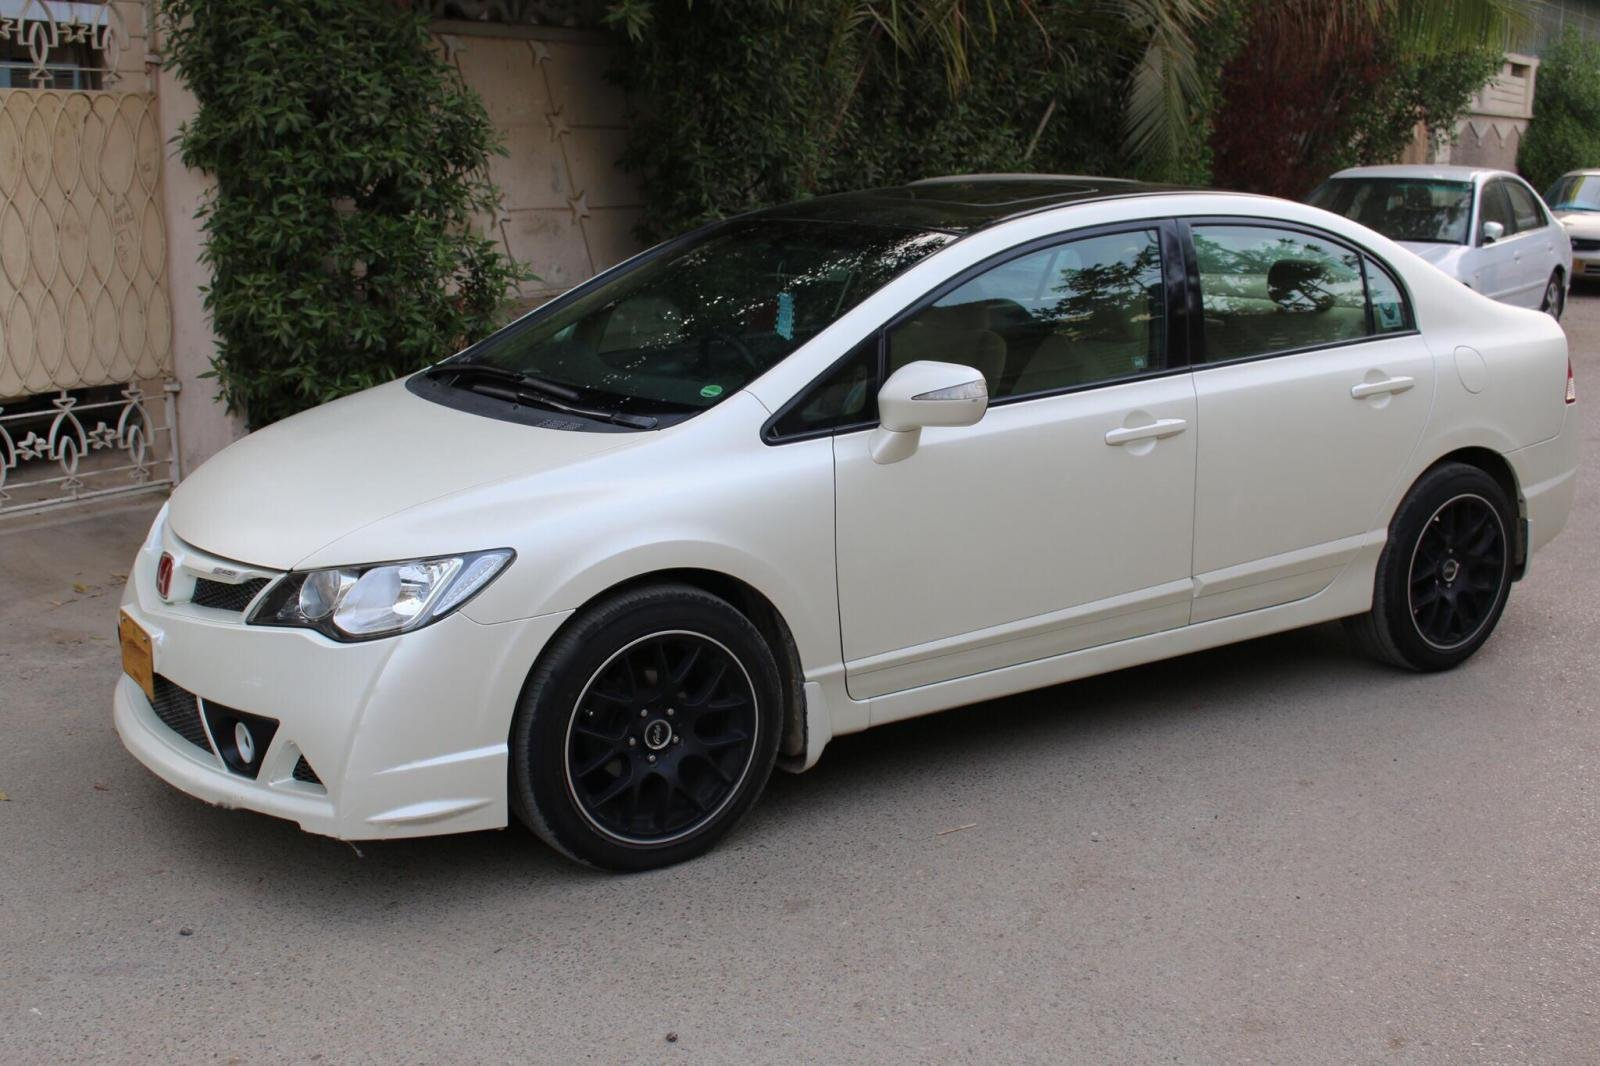 Civic Fd1 From Karachi Pakistan Wrapped In Satin Pearl White 3m 1080 8th Generation Honda Civic Forum